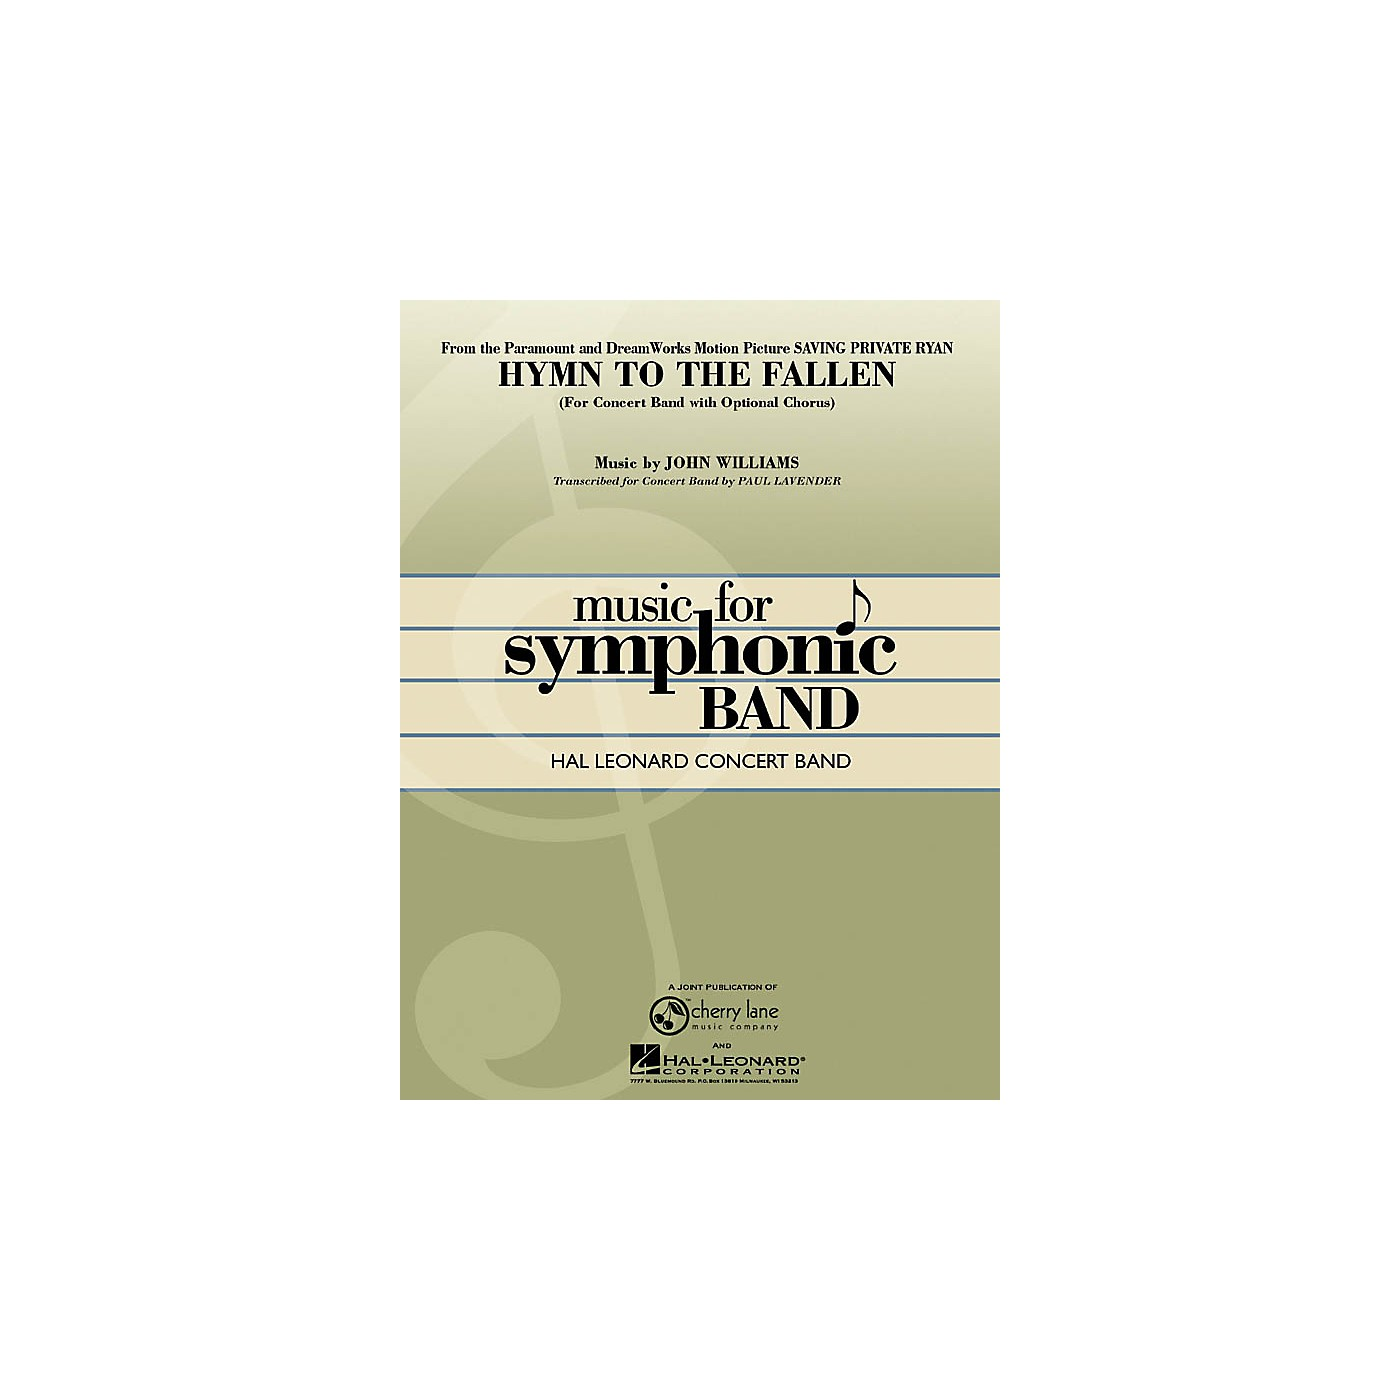 Hal Leonard Hymn to the Fallen (from Saving Private Ryan) Concert Band Level 4-5 Arranged by Paul Lavender thumbnail